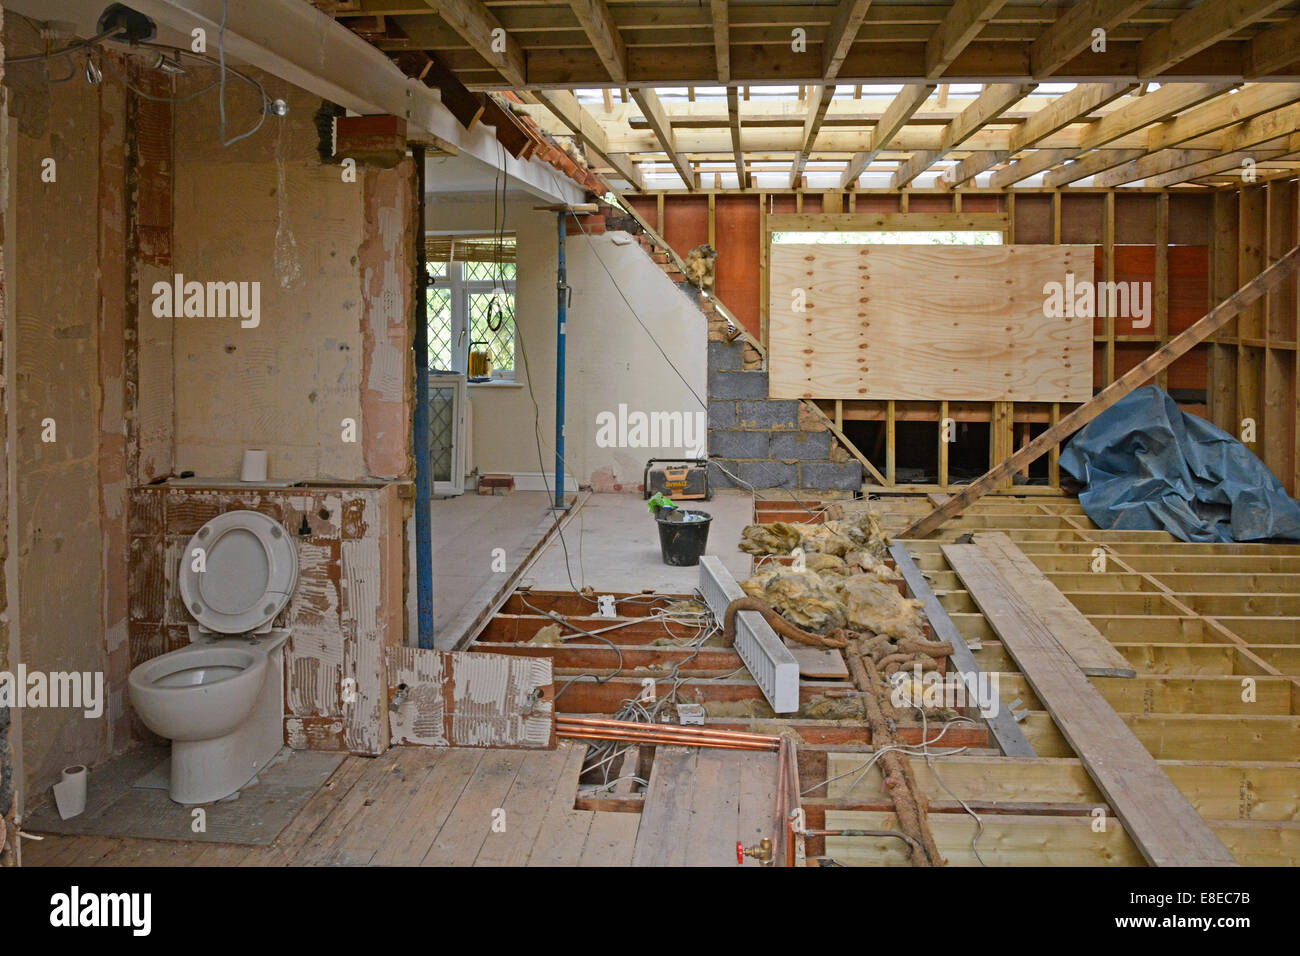 Acrow Prop For Home : Acrow props stock photos images alamy